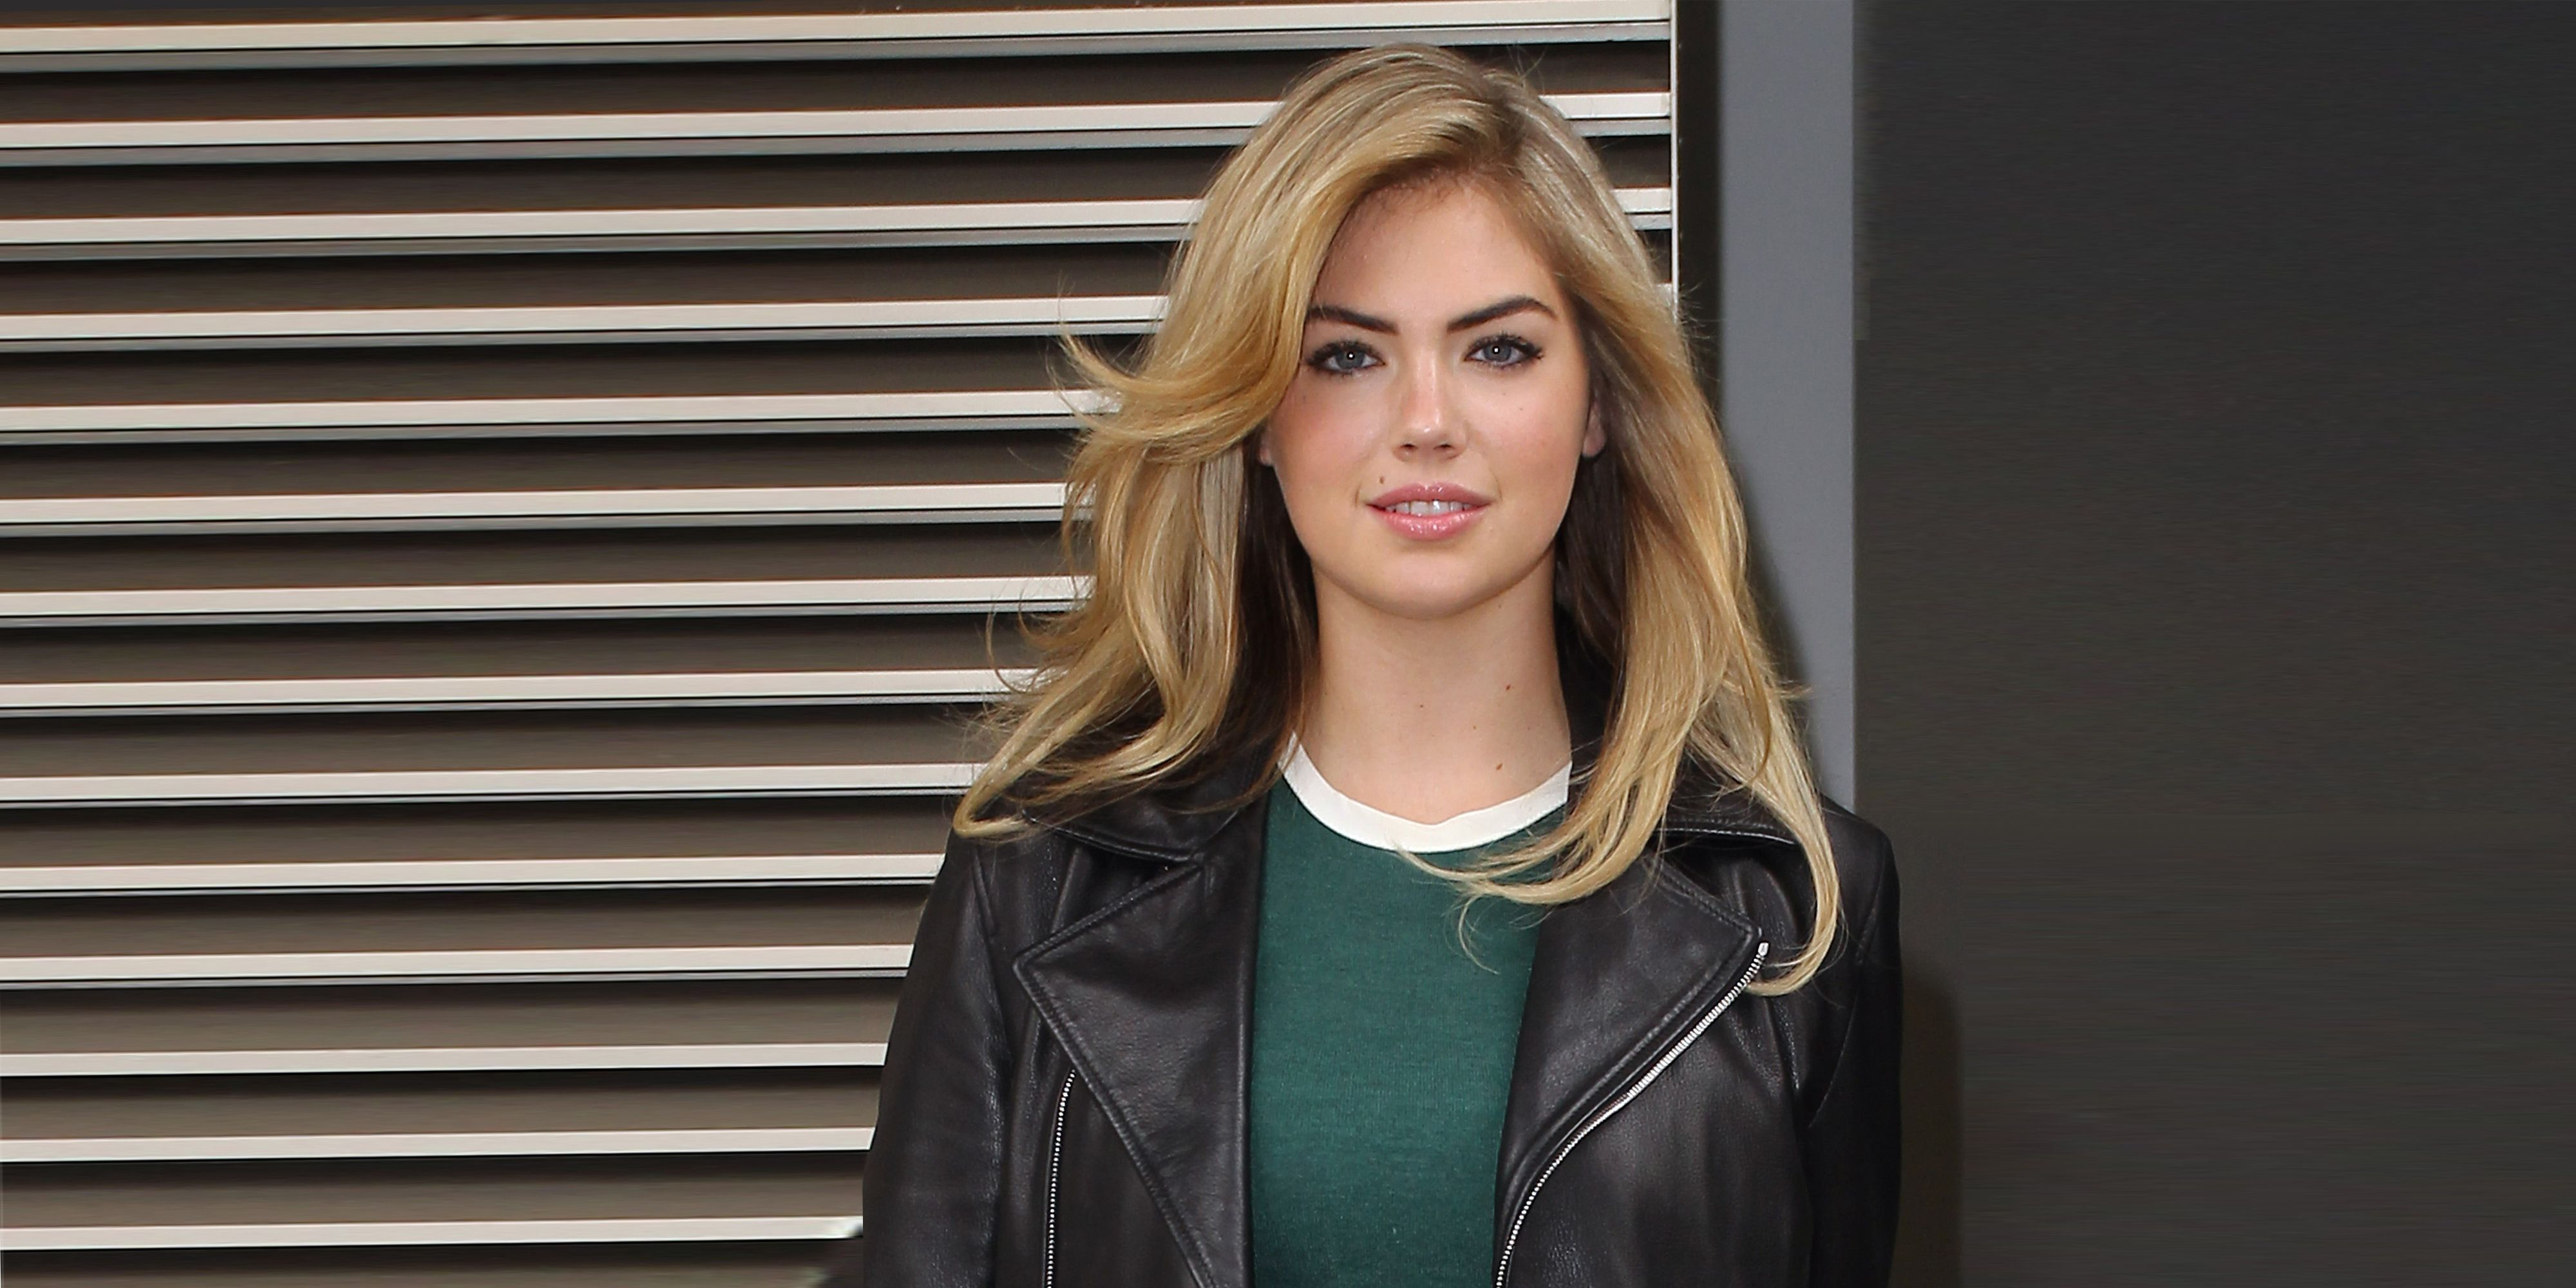 Kate Upton Shares All The Intimate Details Of Her Beauty Routine